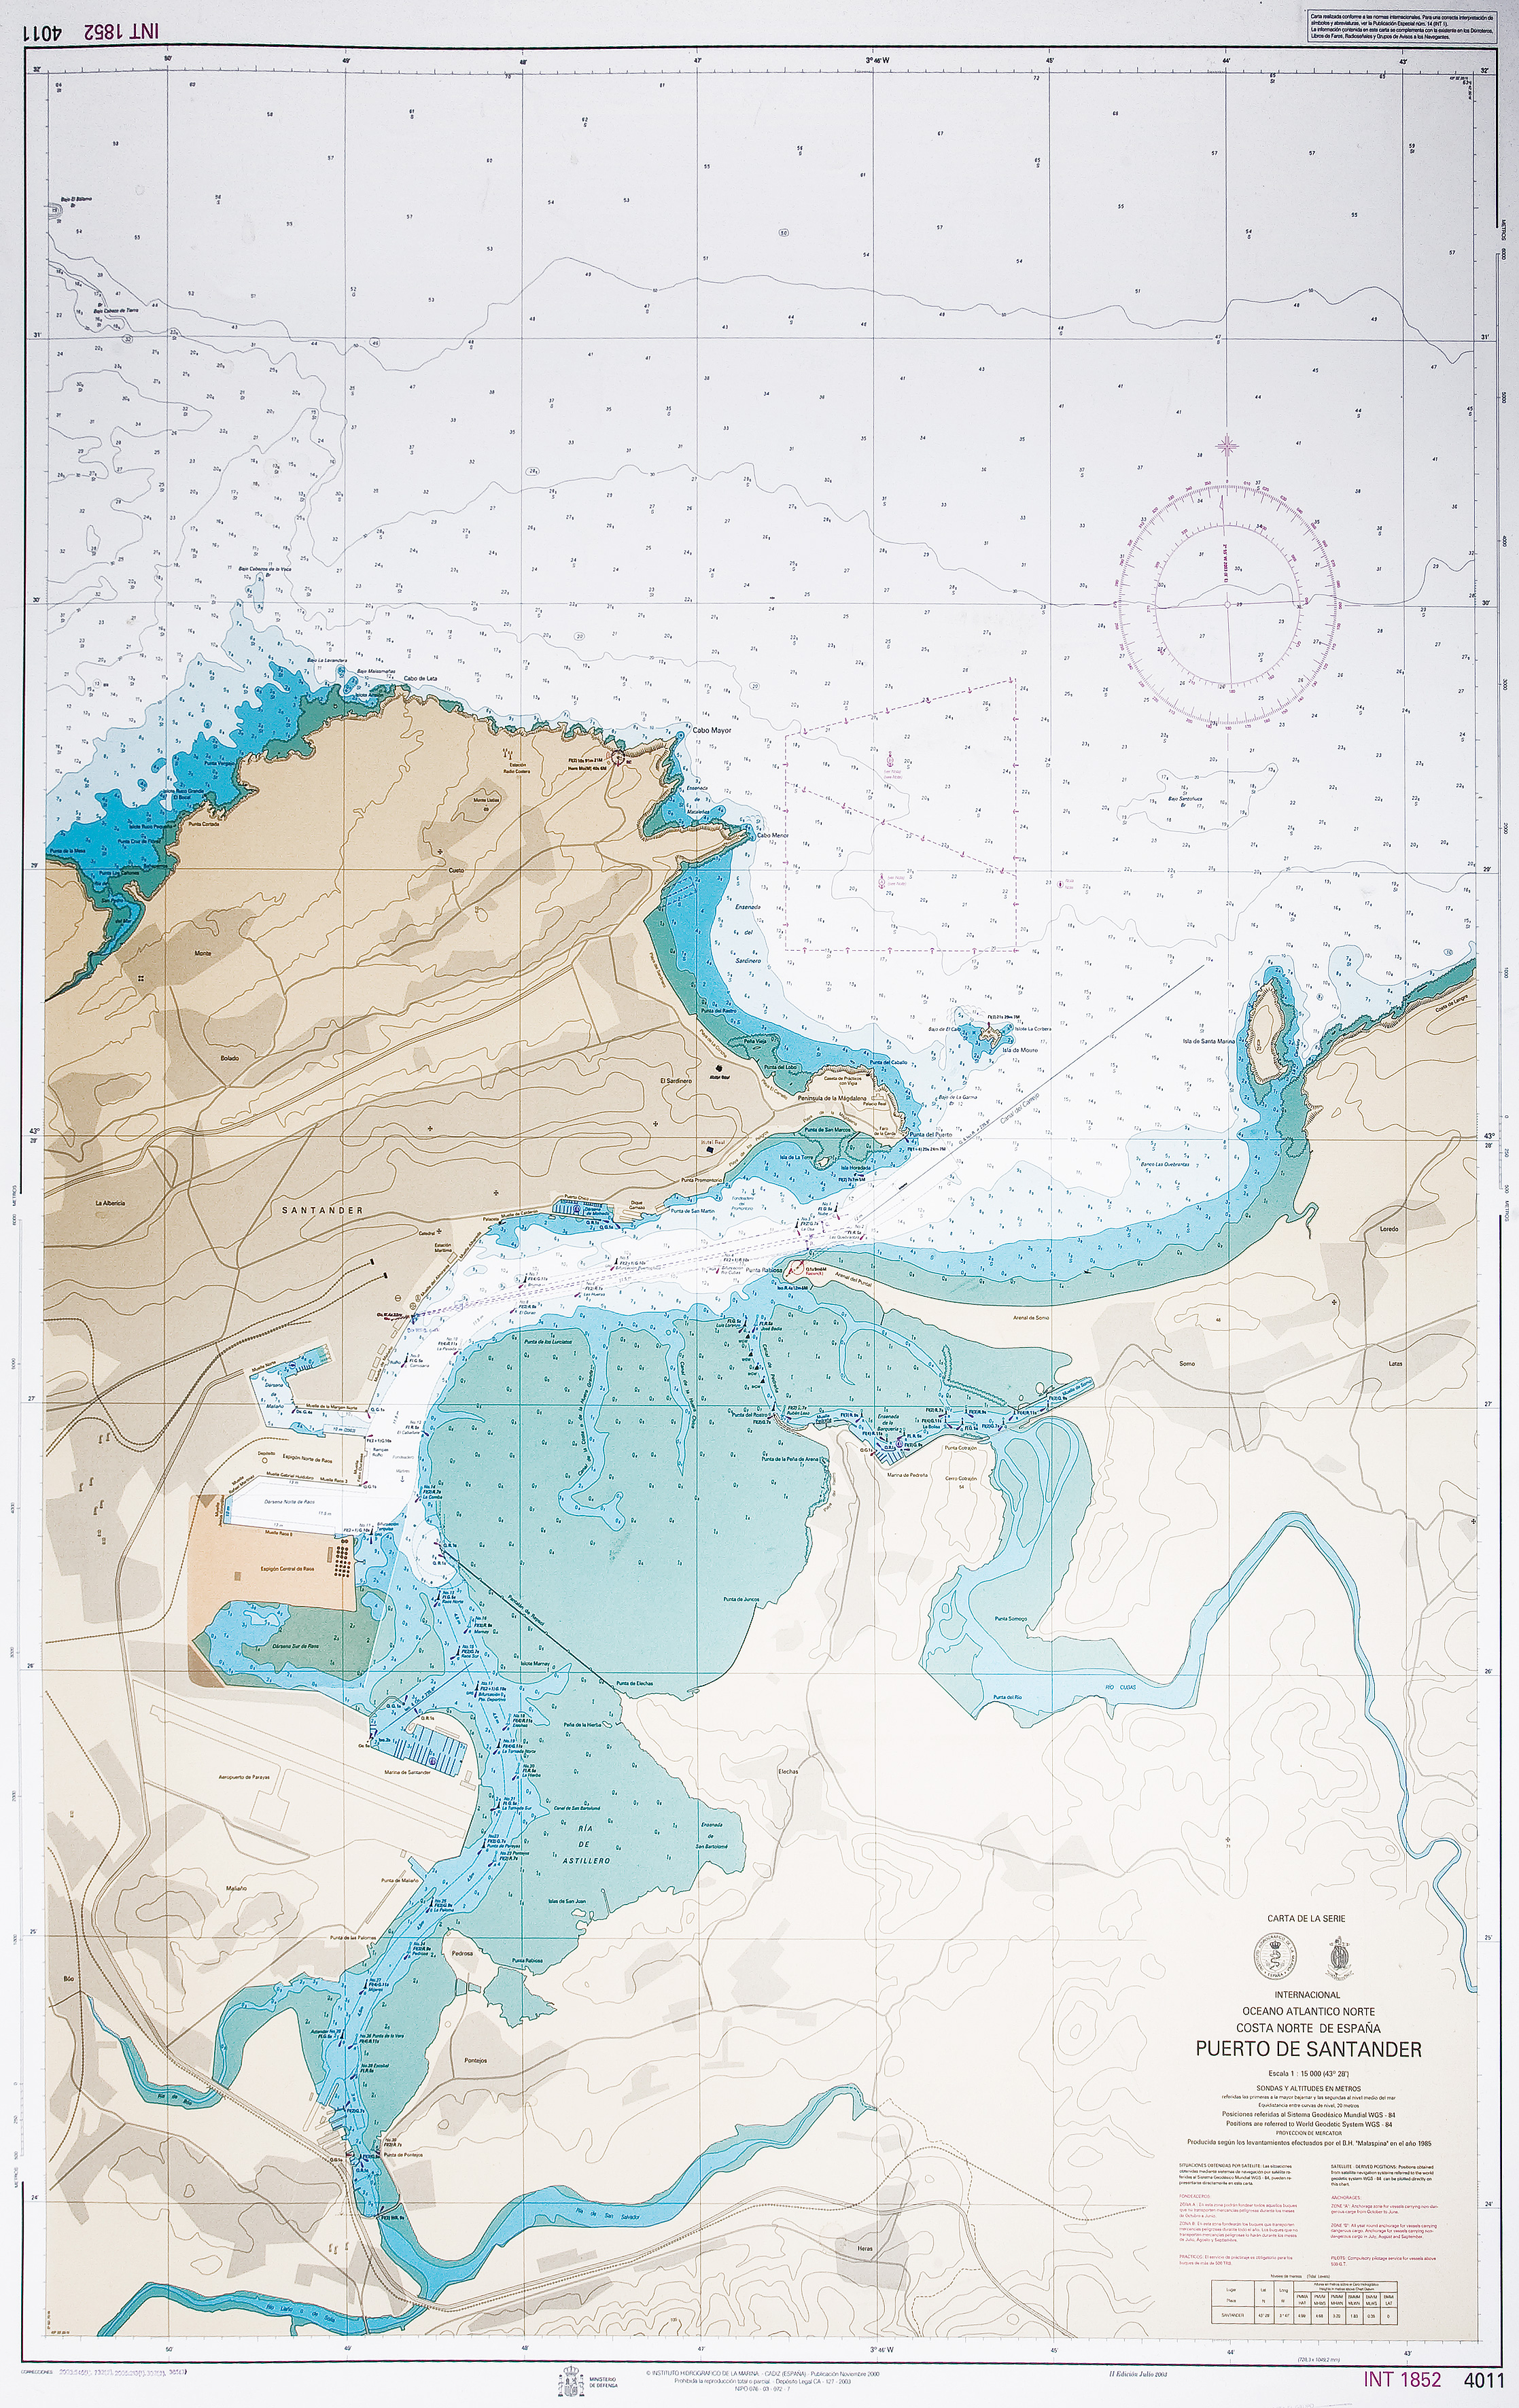 Nautical chart of the port of Santander 2000